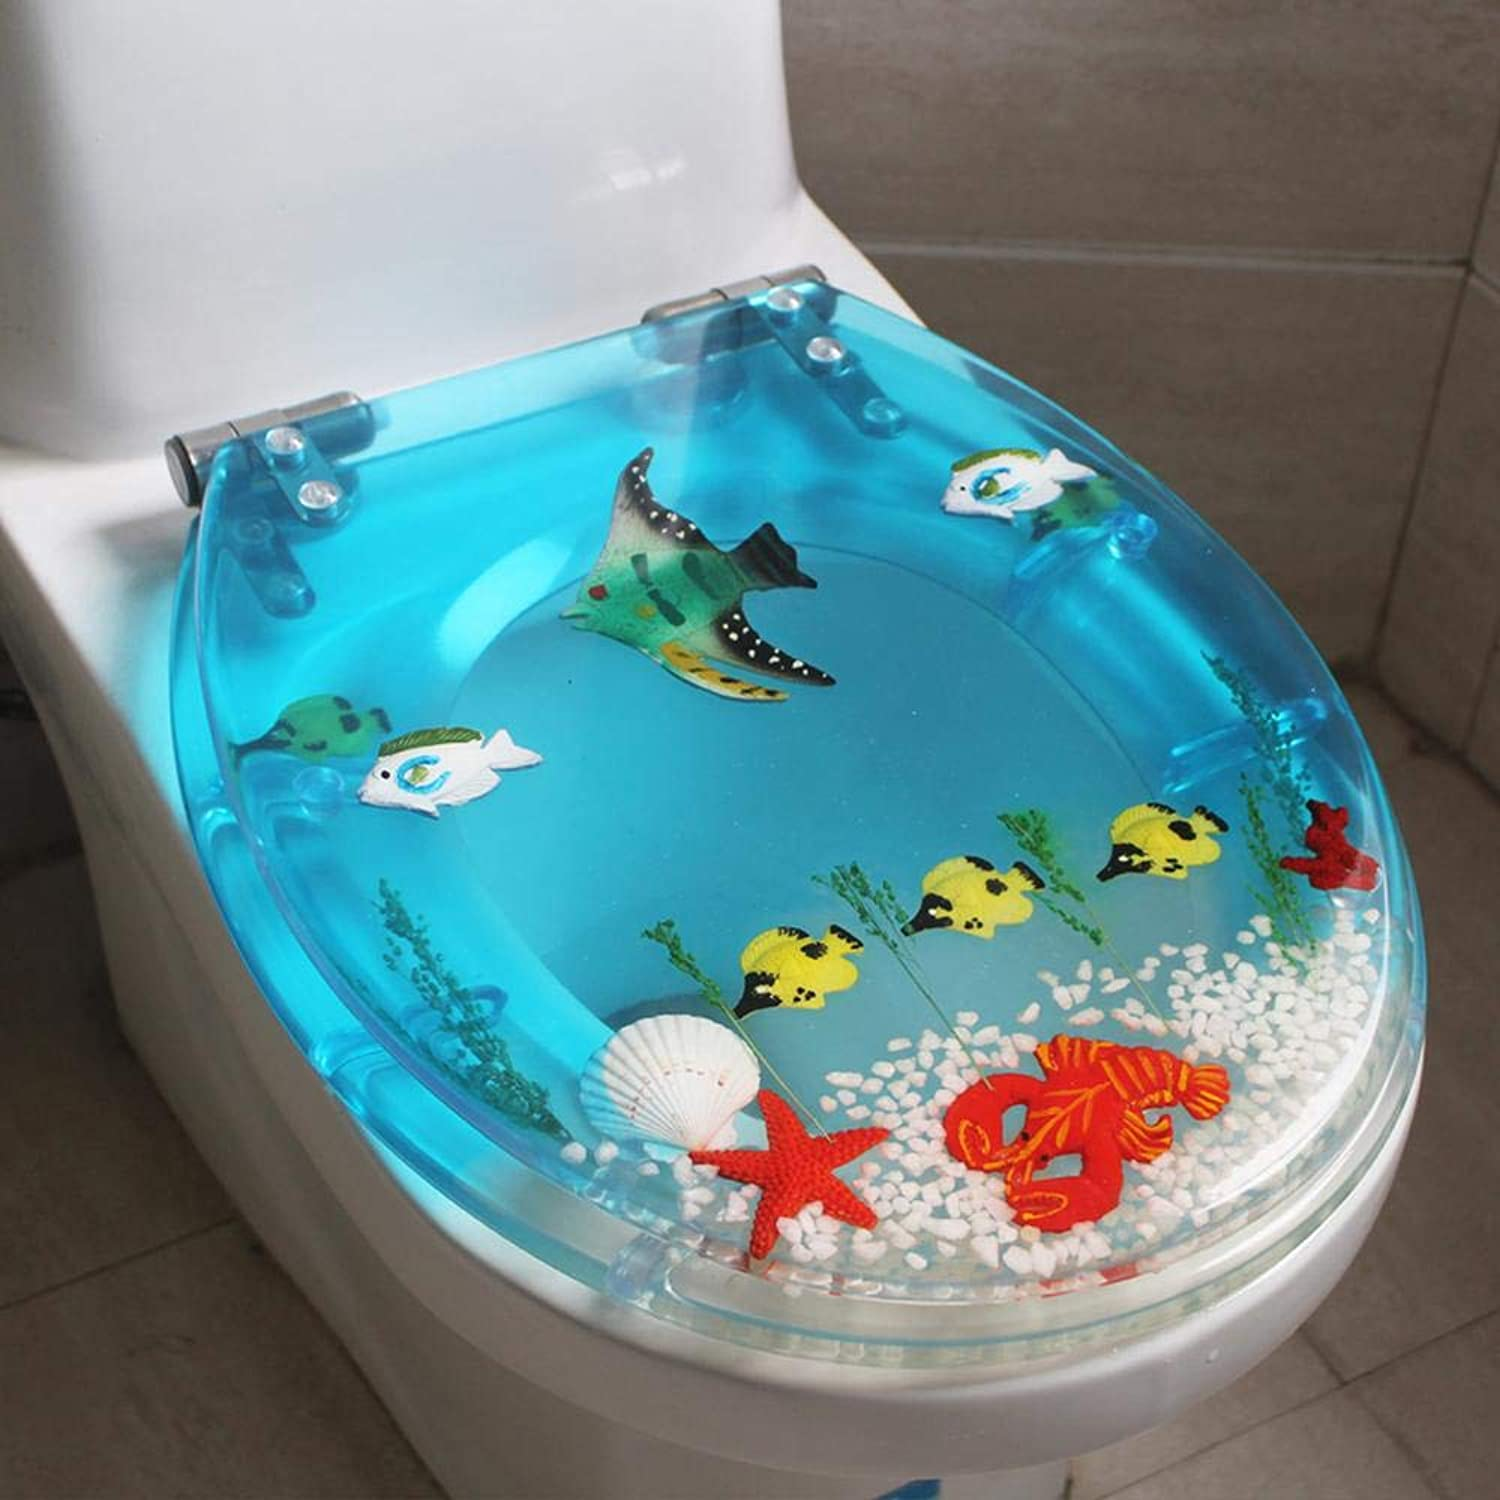 Toilet Seats V U O-Type Marine Fish High Quality Wide Choice Toilet Lid Stable Hinges Easy to Install Families Bathrooms